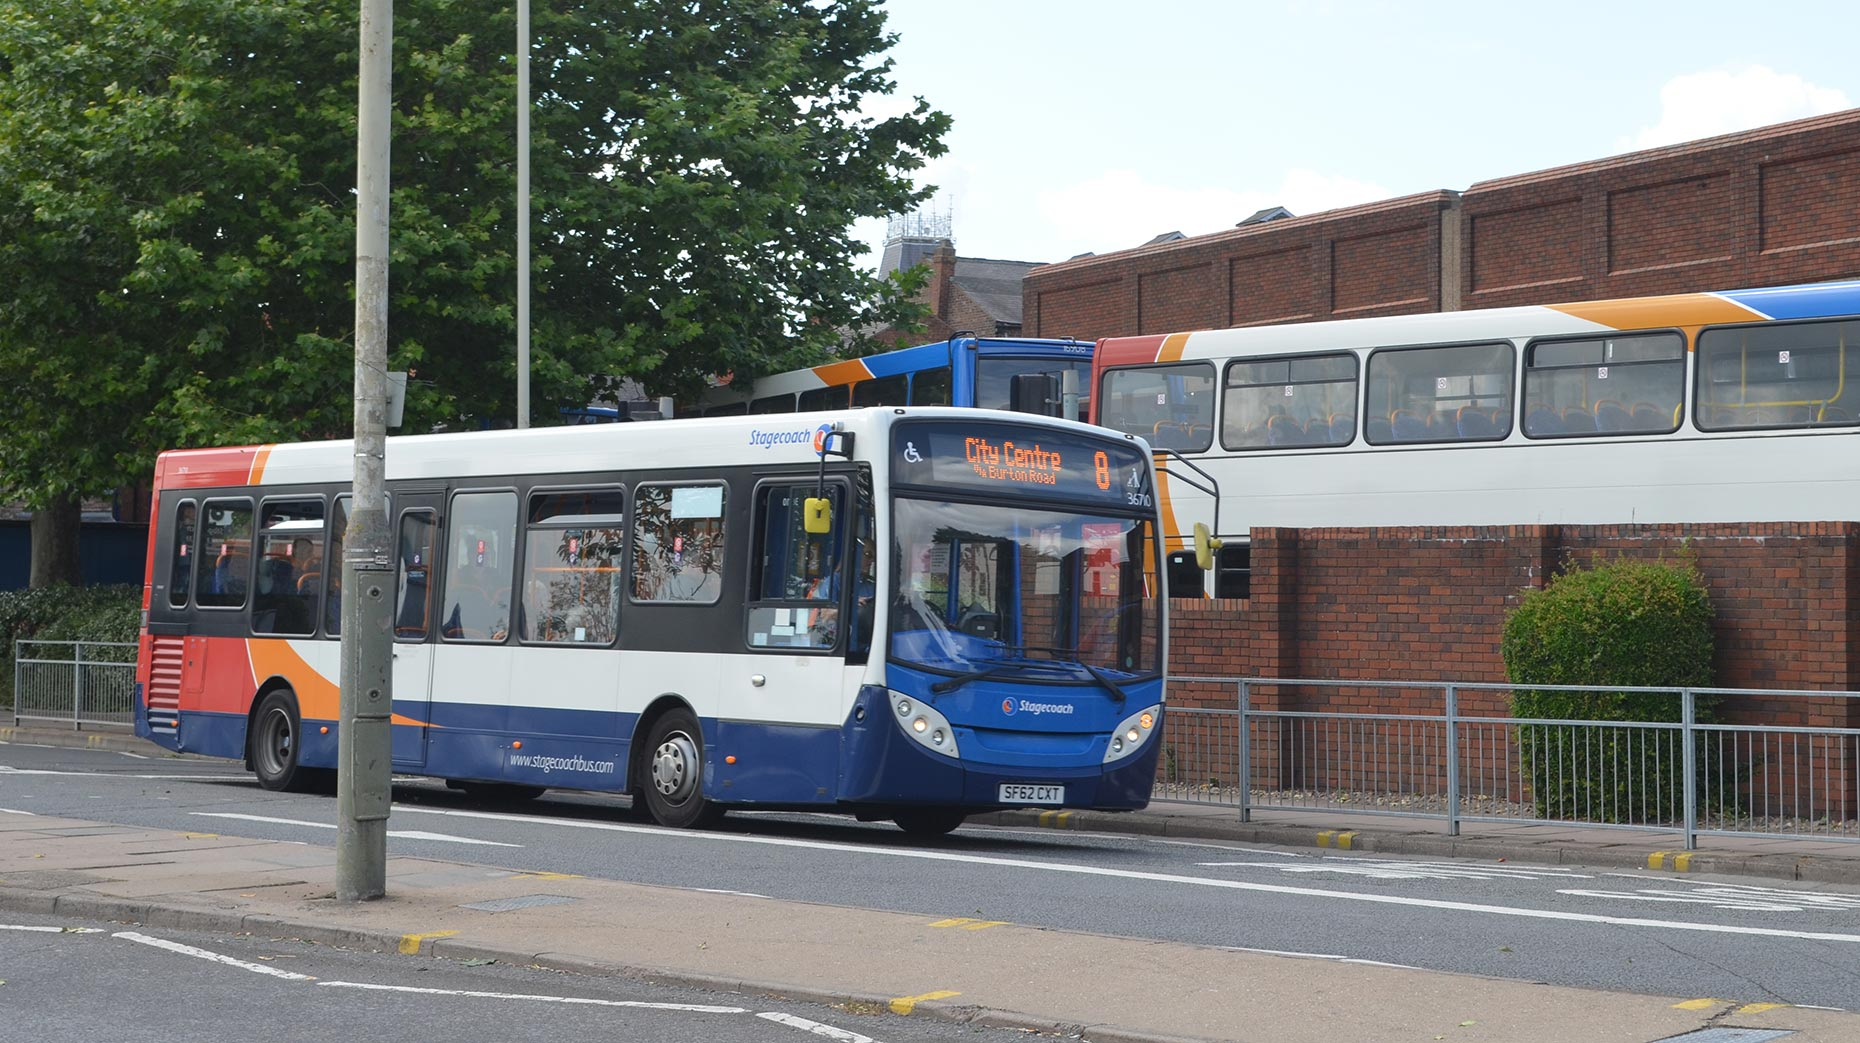 North Park Lincoln >> Revised Lincoln bus timetables to begin ahead of Transport Hub works